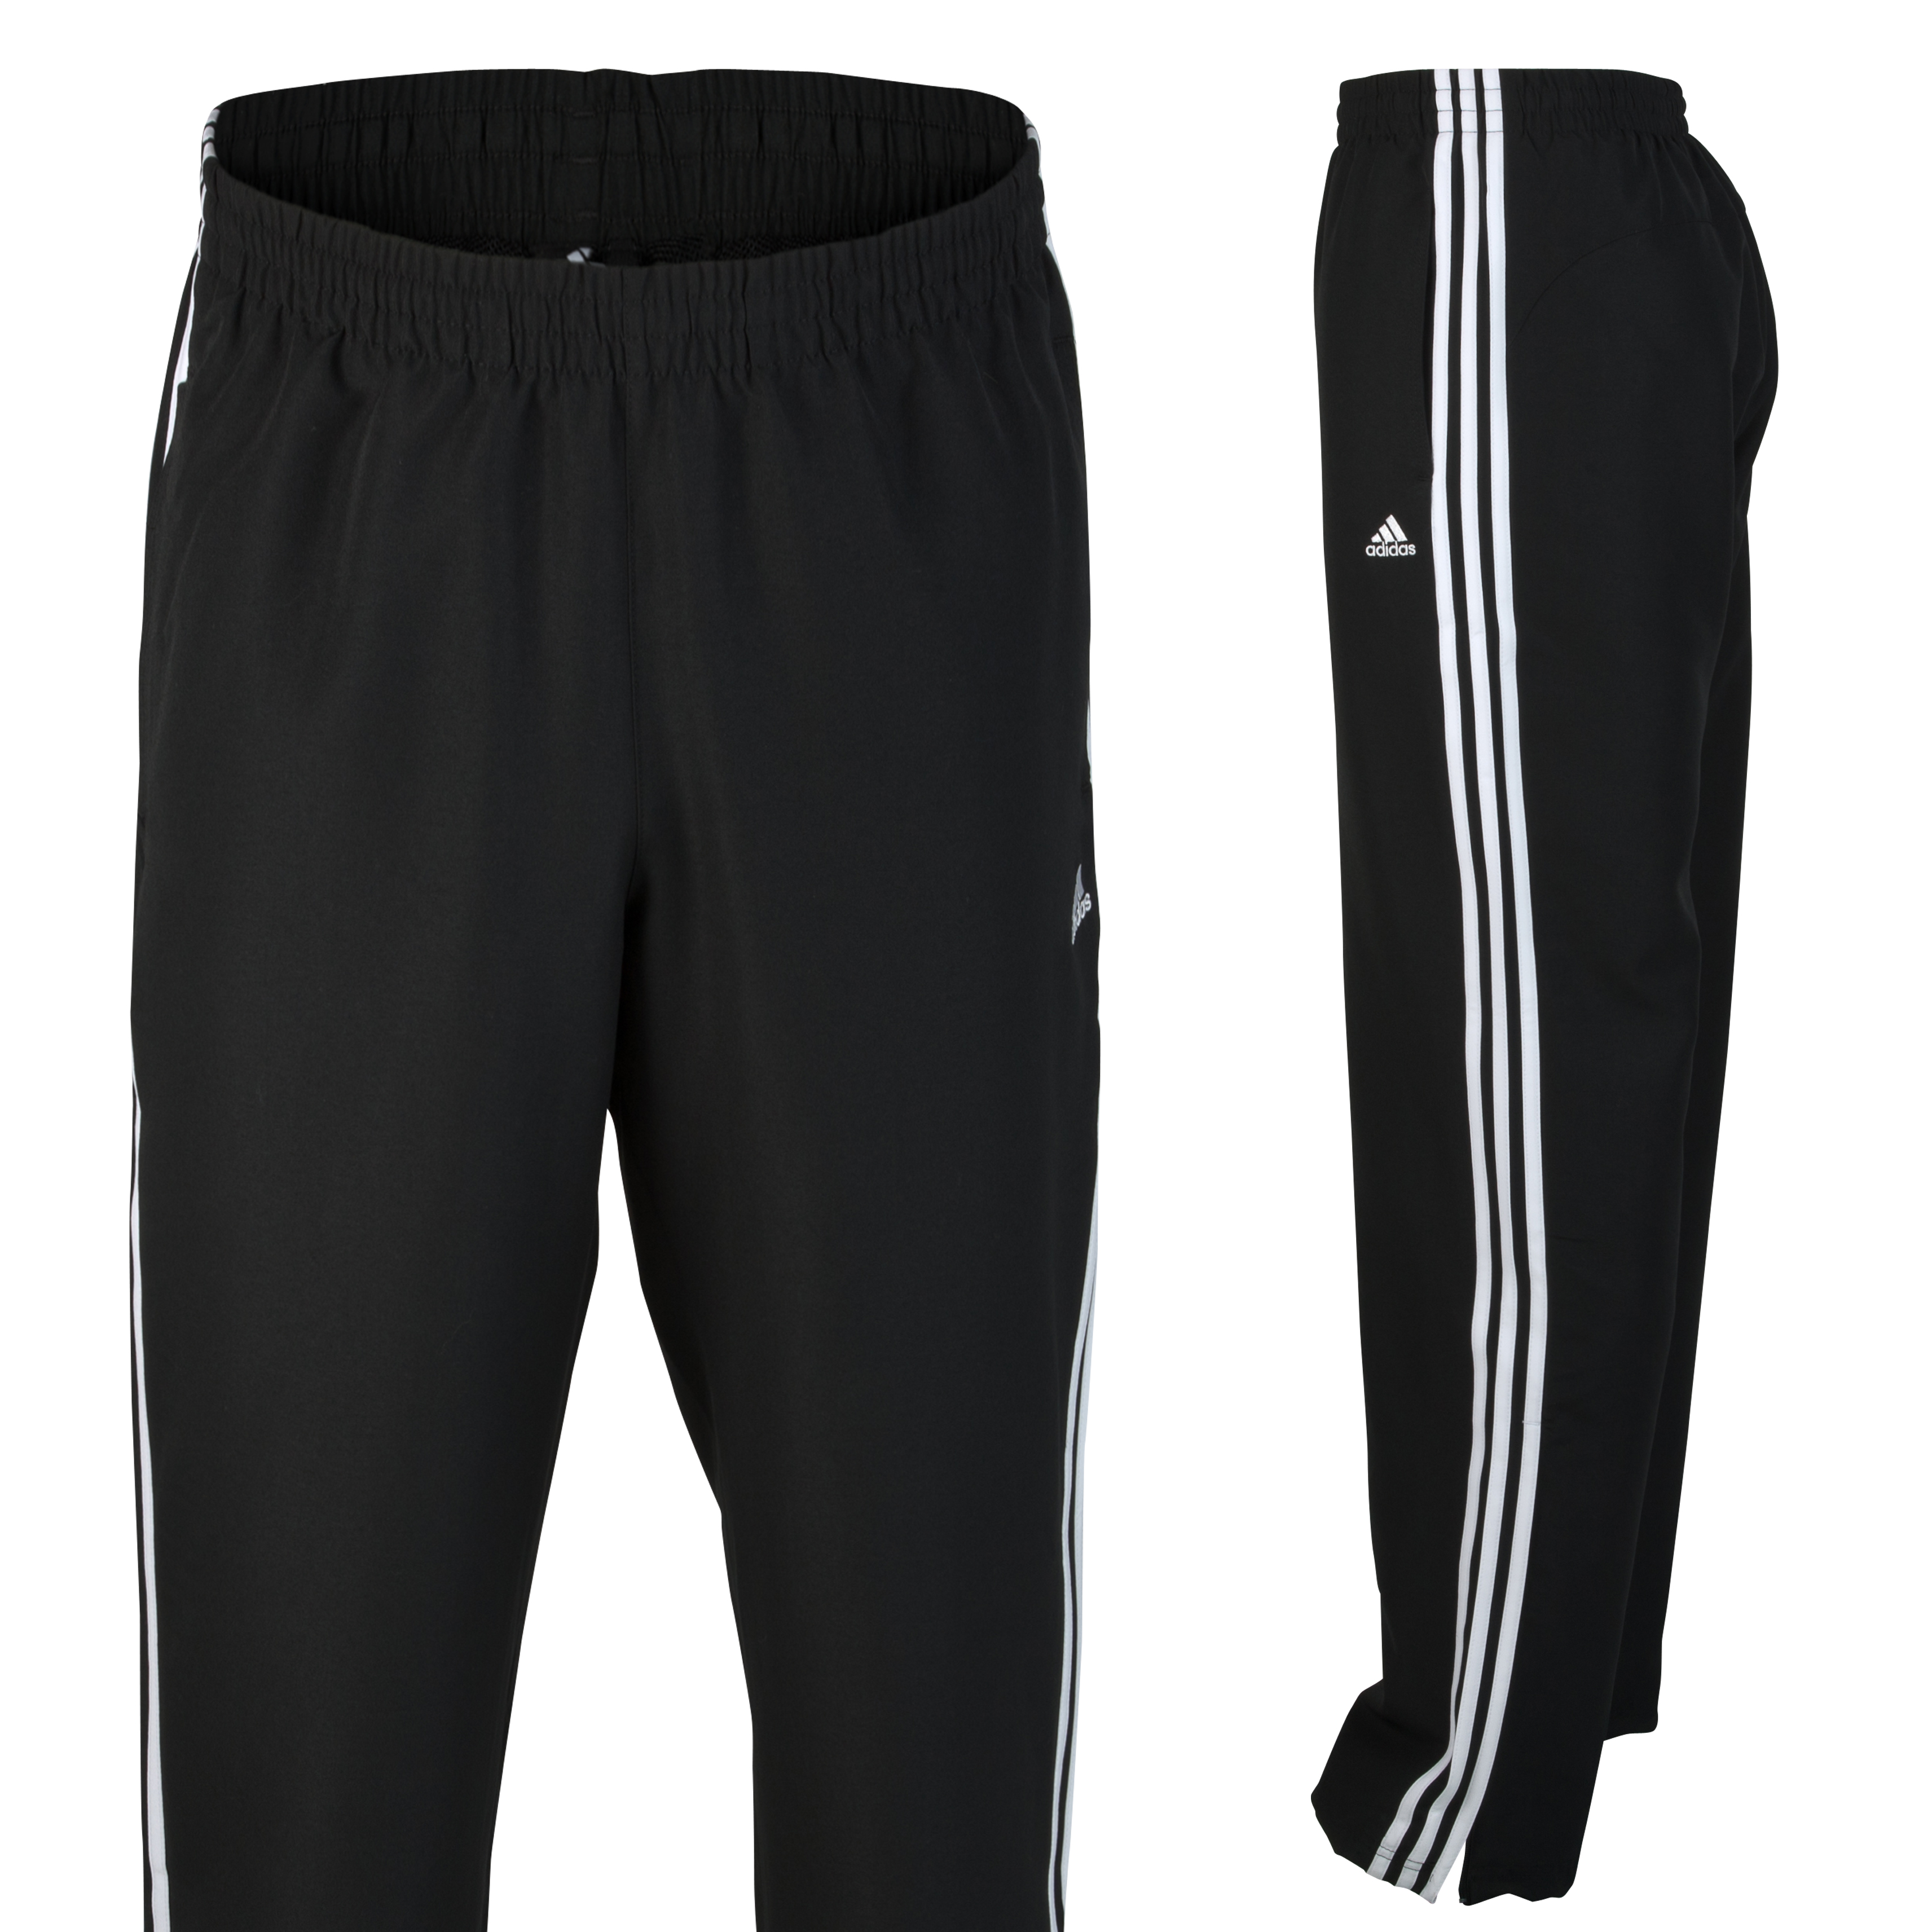 adidas Essentials 3 Stripe Woven Pant - Black/White